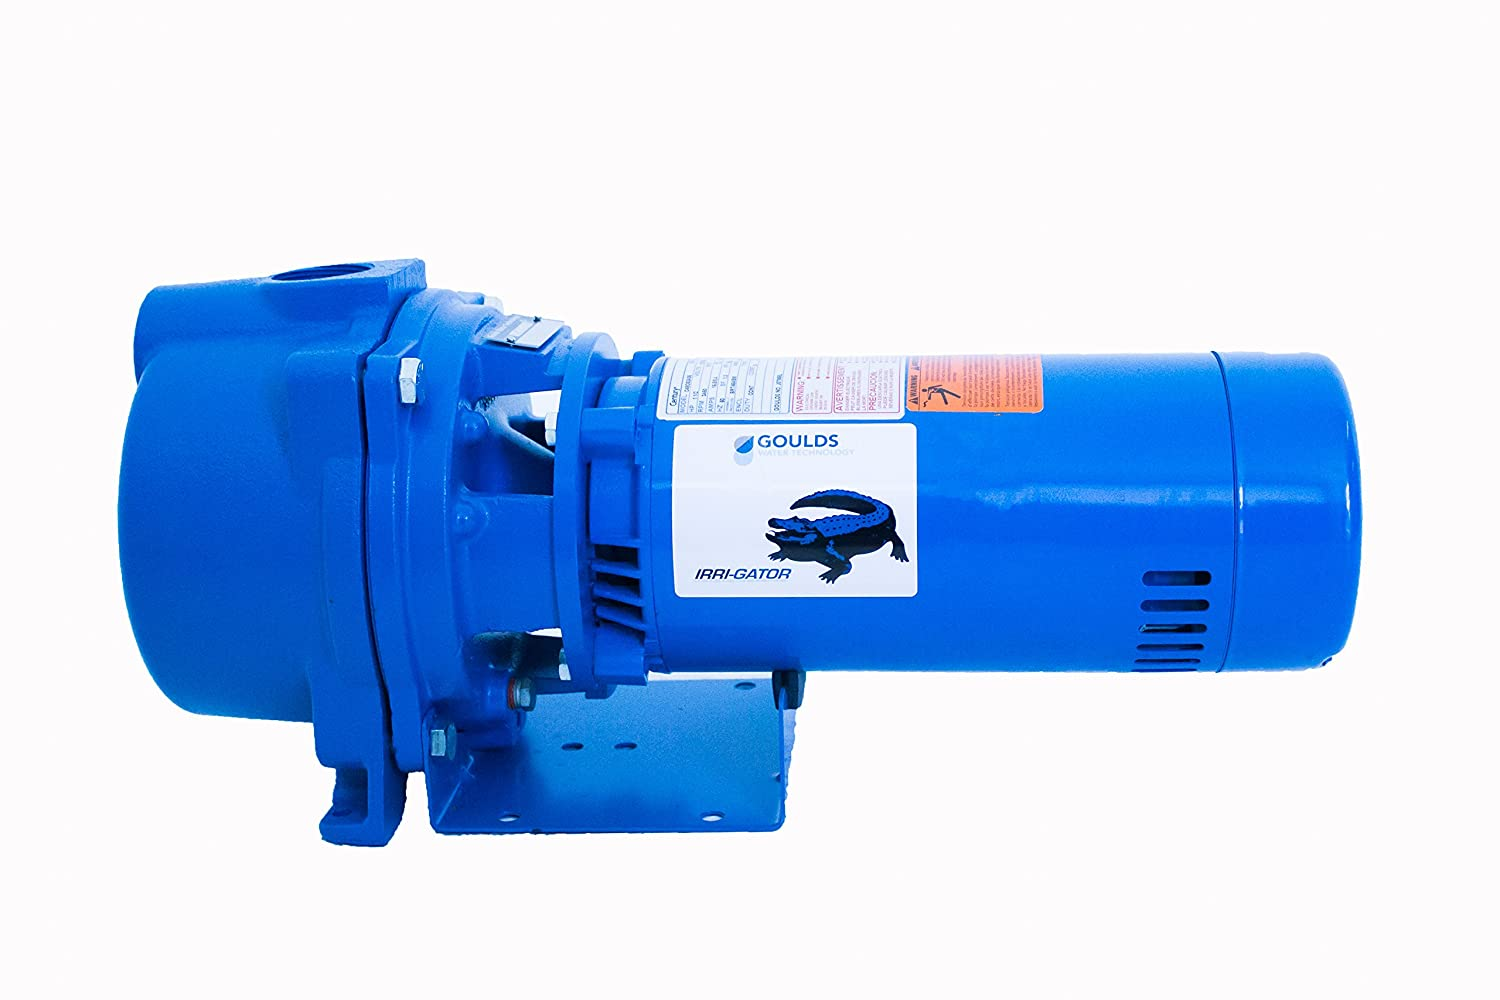 Goulds GT10 Irri-Gator self Priming Centrifugal Pump - 1 hp